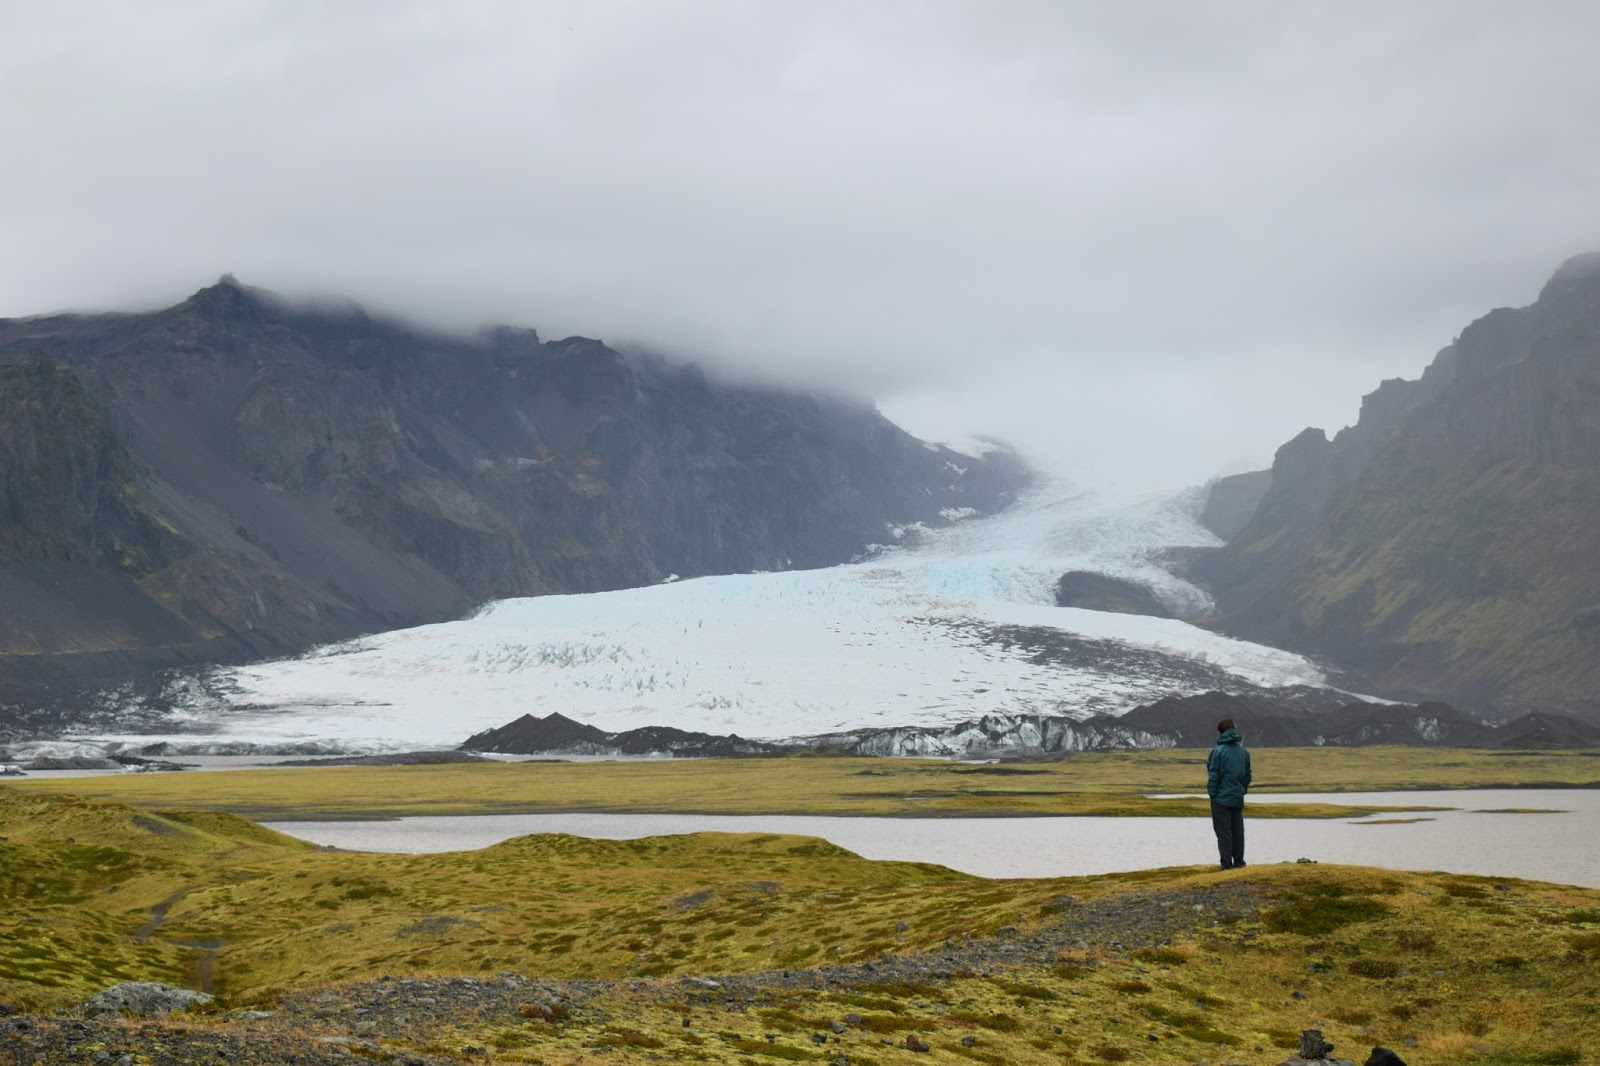 Michael in front of a glacier, name is escaping me right now...